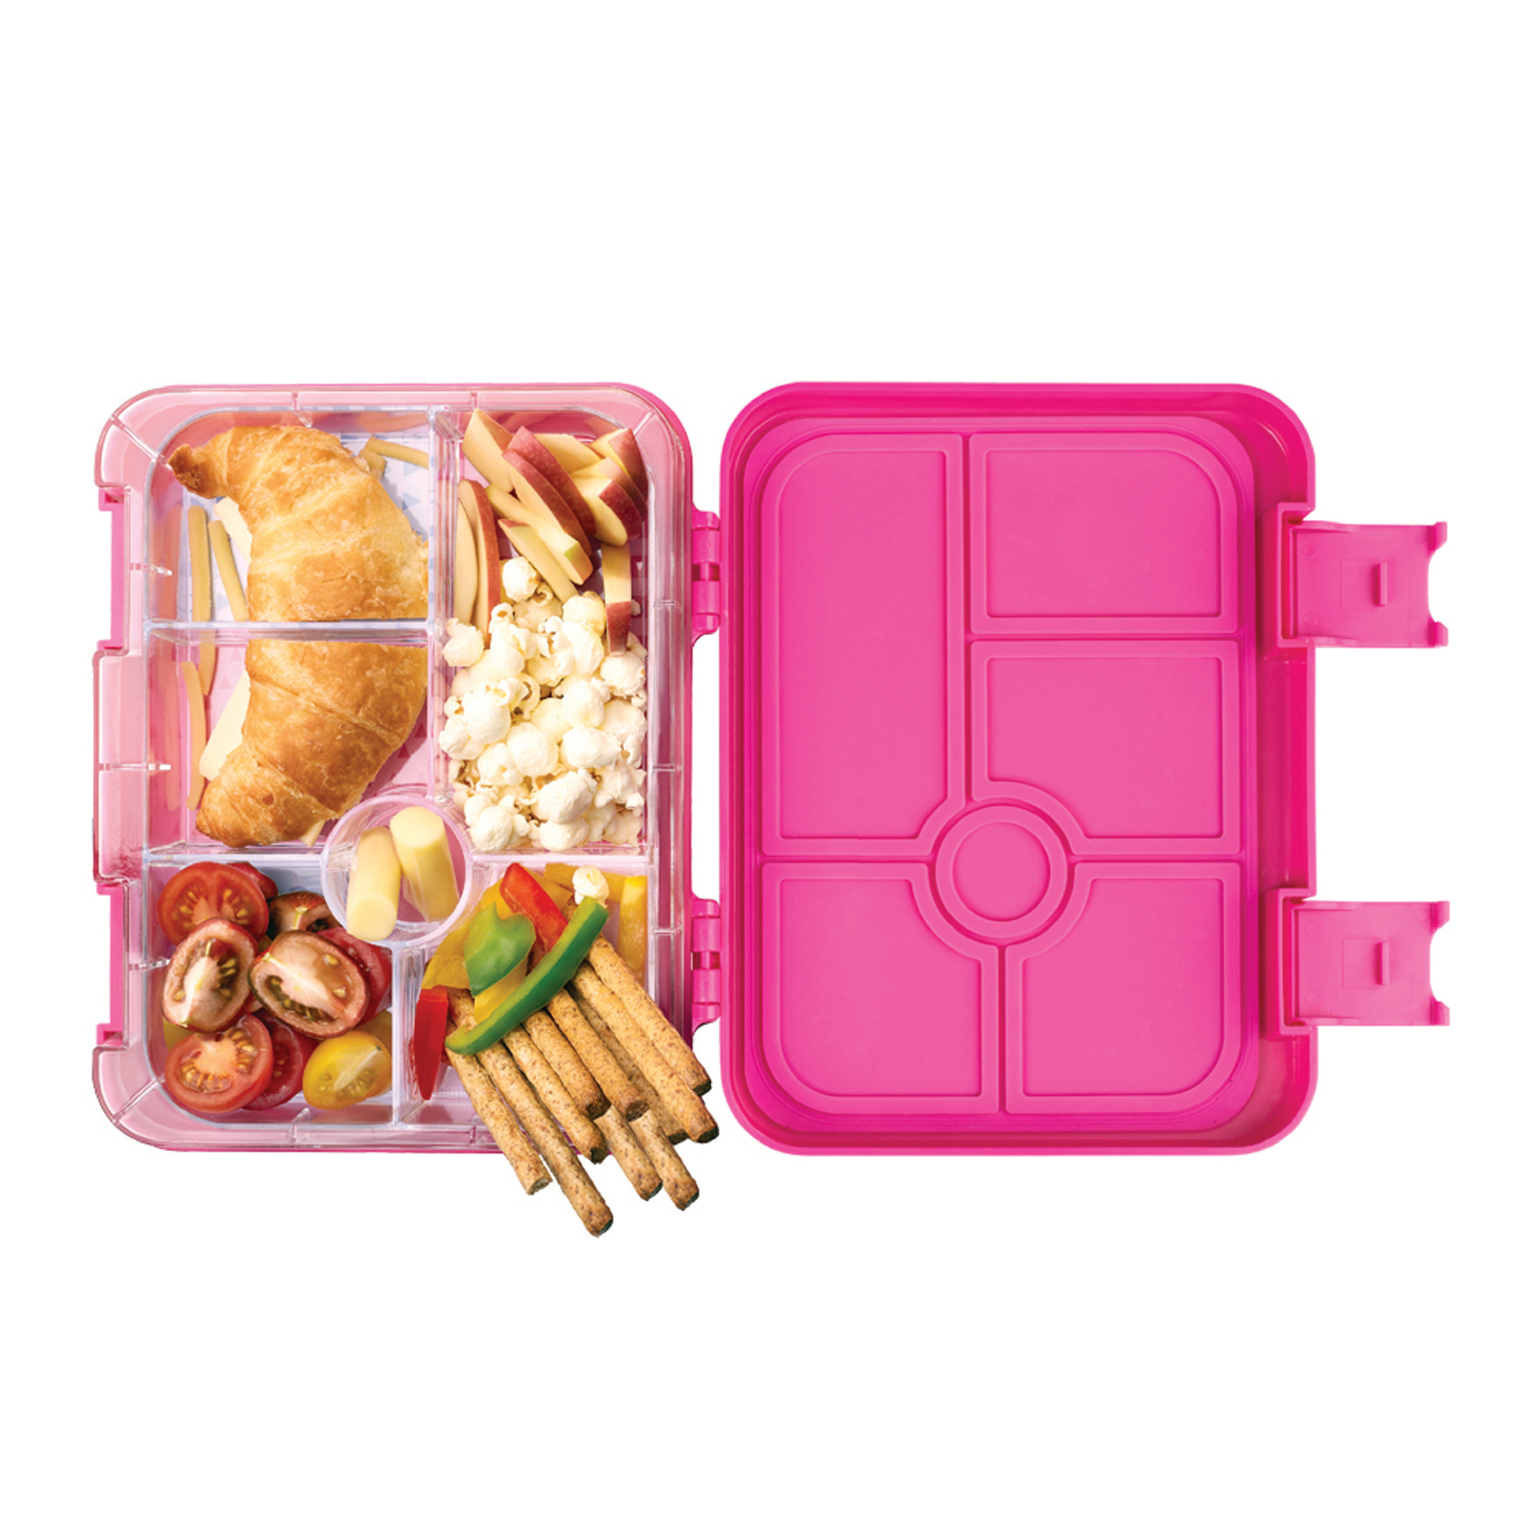 Pear Salad Bento Box image